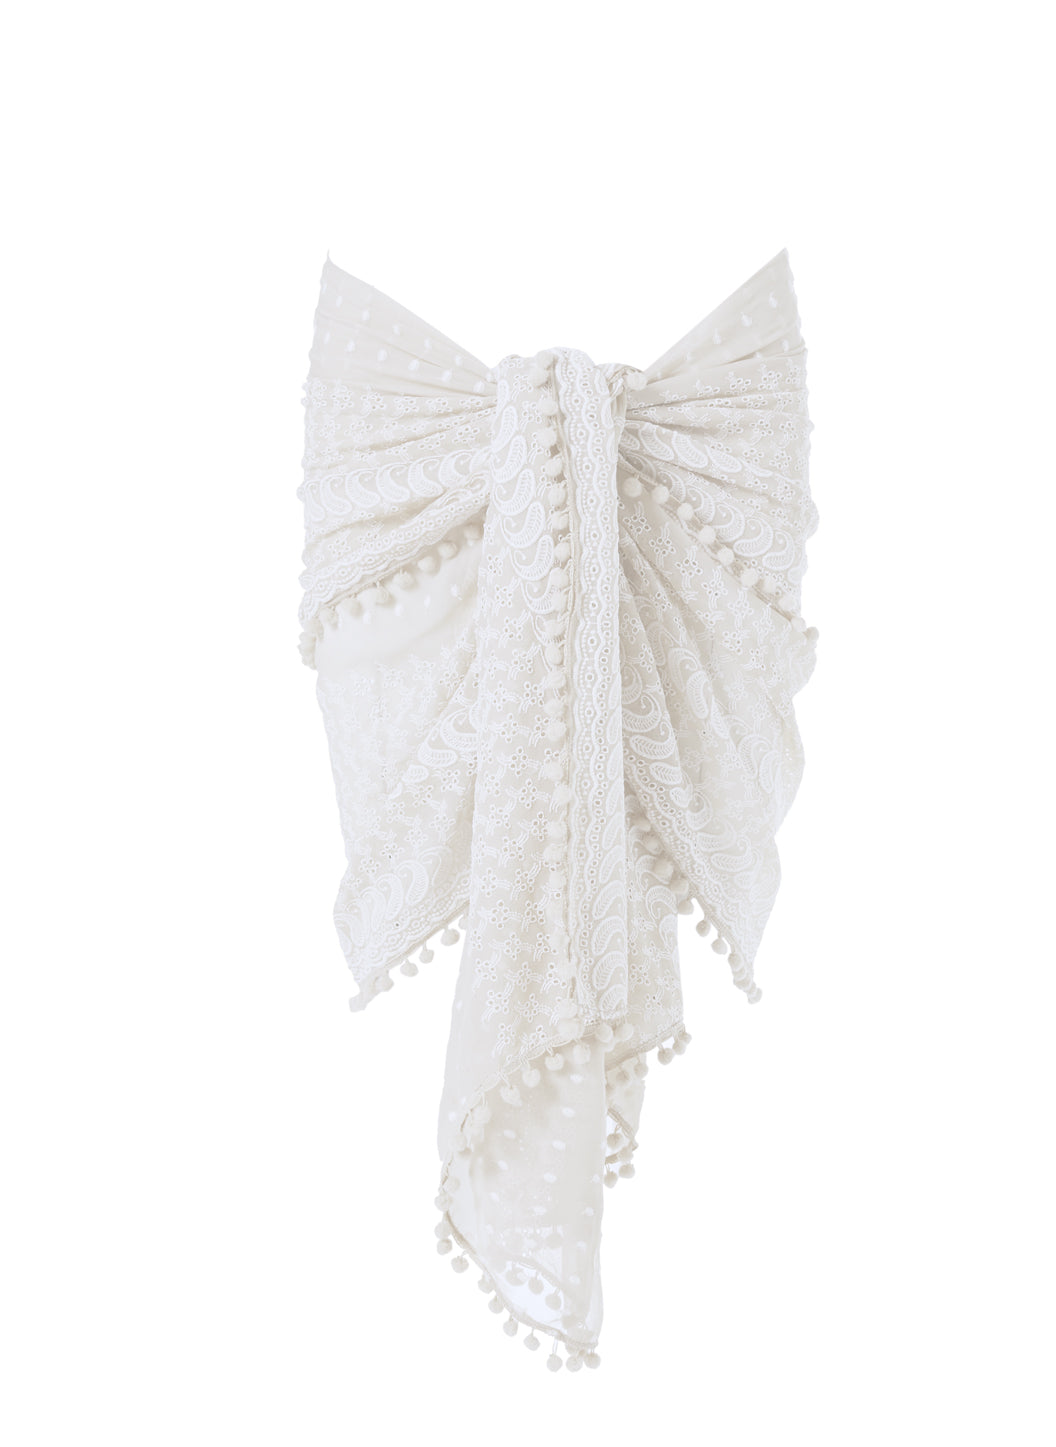 Pareo White Embroidered Multi-Way Cover Up - Melissa Odabash Pareos